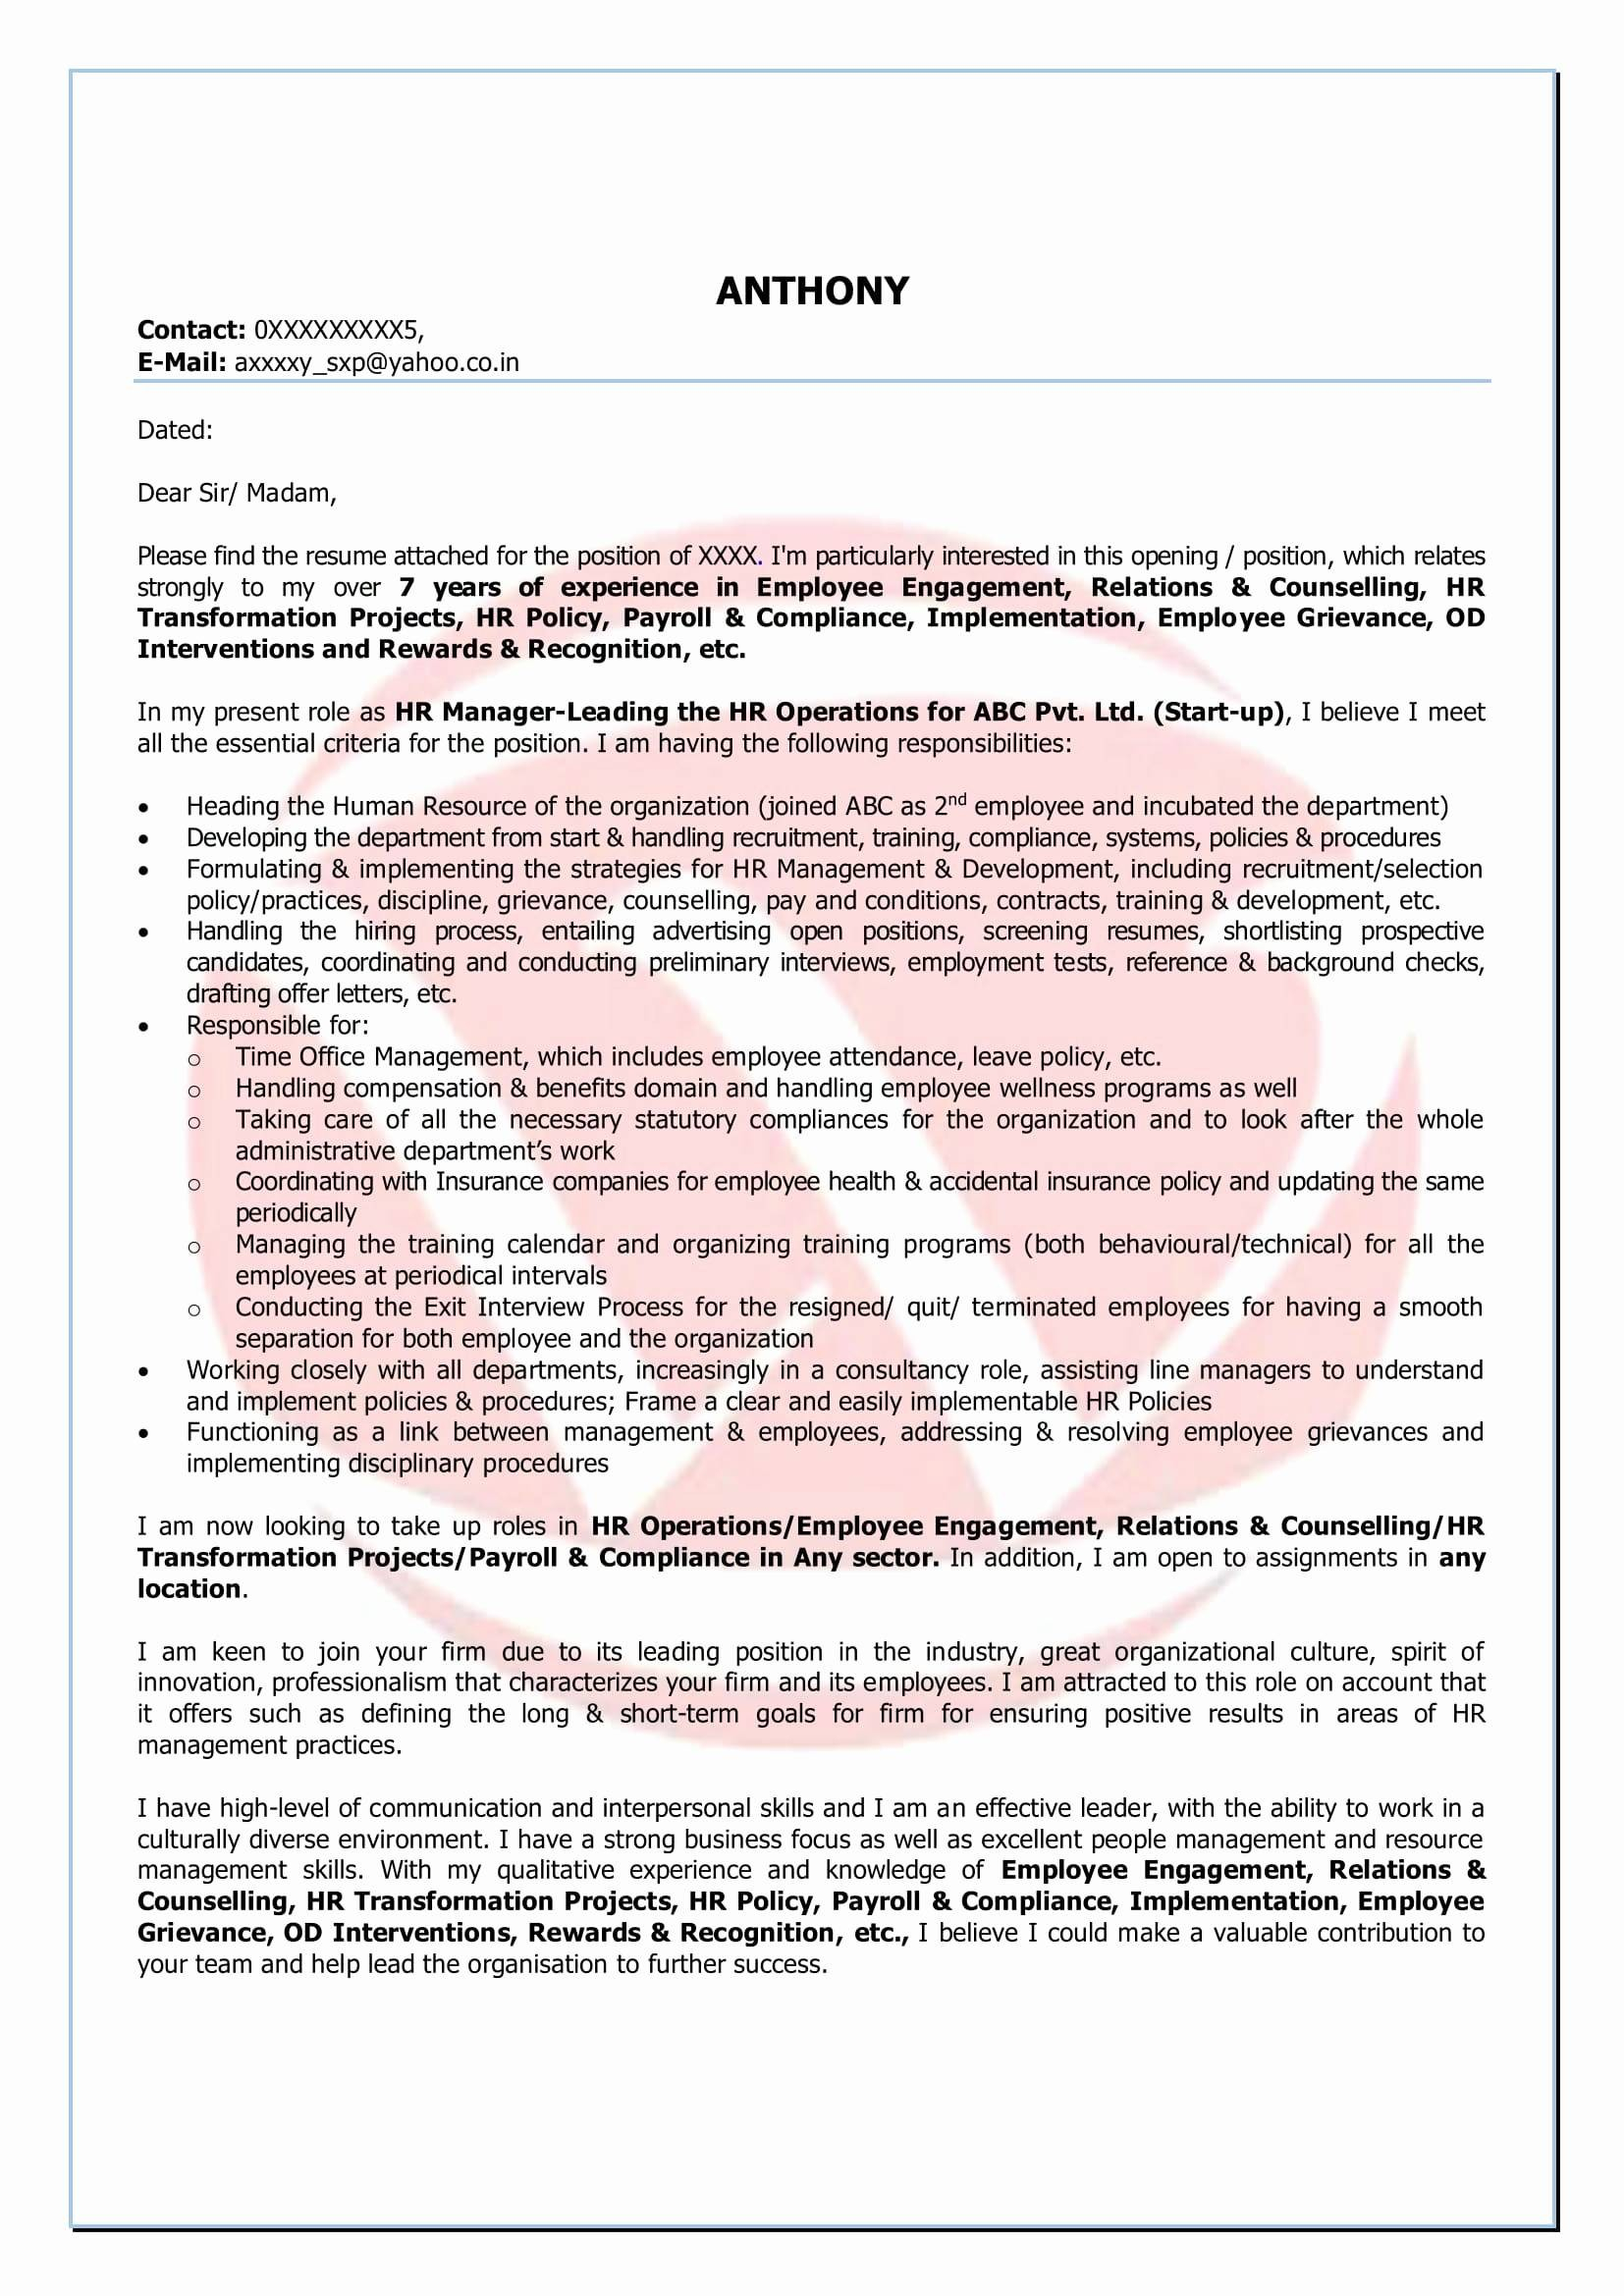 Change Of Management Letter Template - Internal Transfer Letter Template New 10 Inspirational Internal